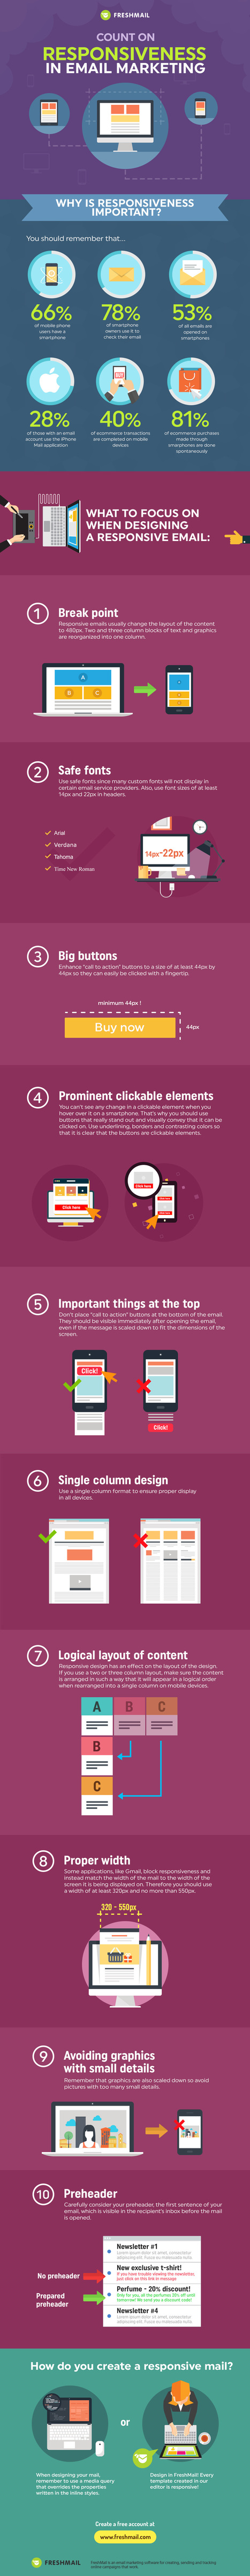 Make responsive email newsletters! #Infographic | FreshMail Email Marketing Blog | Digital Marketing By DigiLawn | Scoop.it